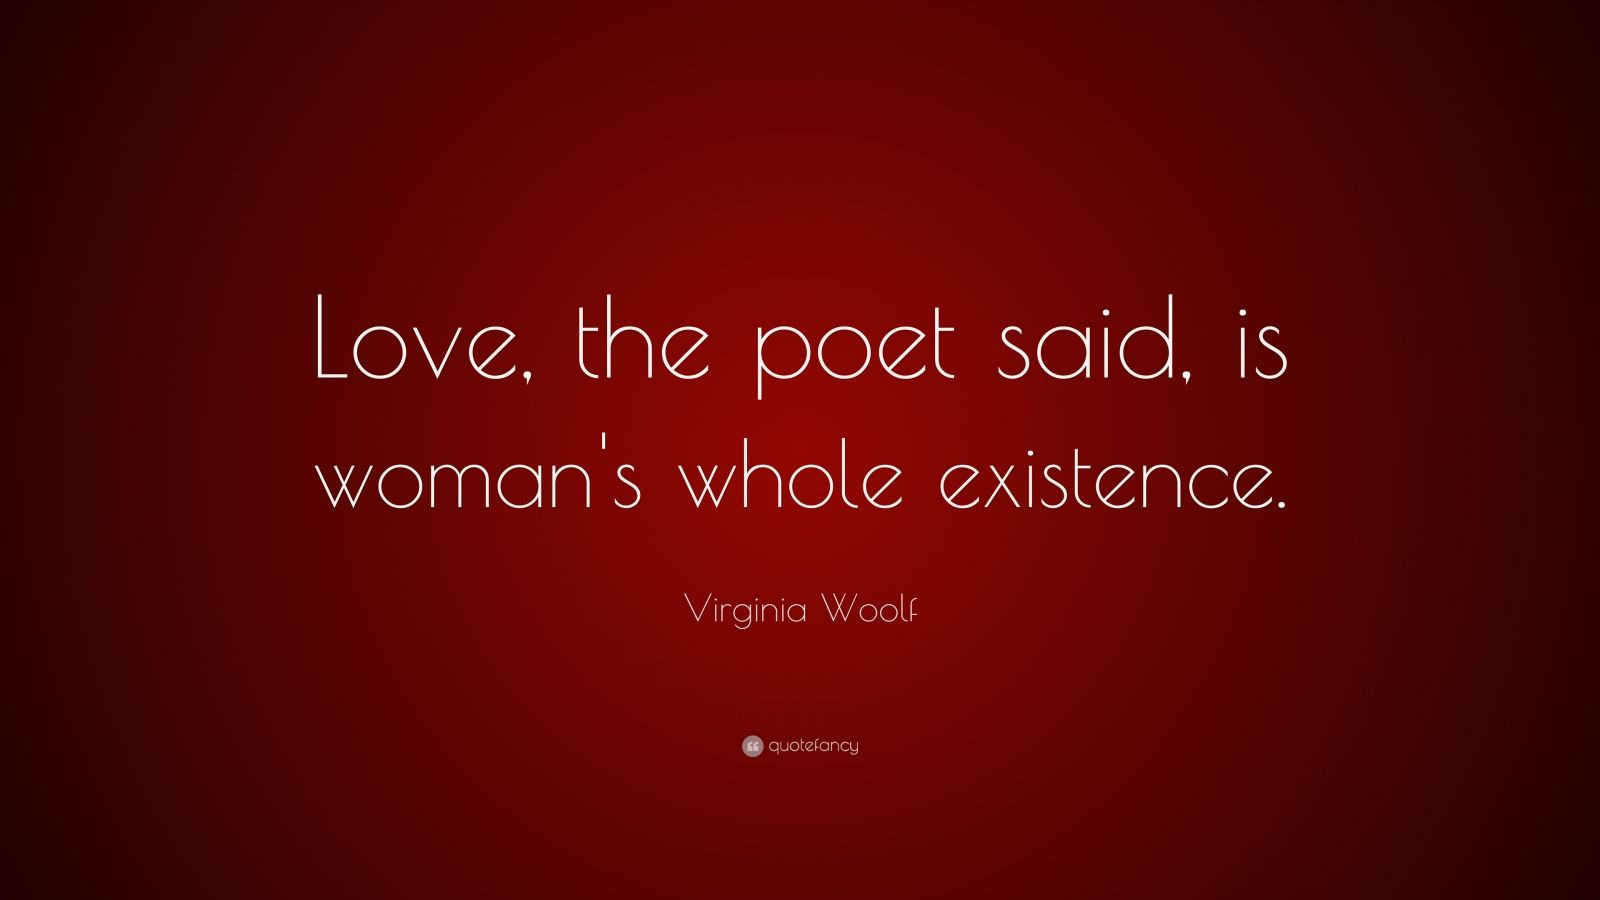 Virginia woolf quotes 16 wallpapers quotefancy for Love the love